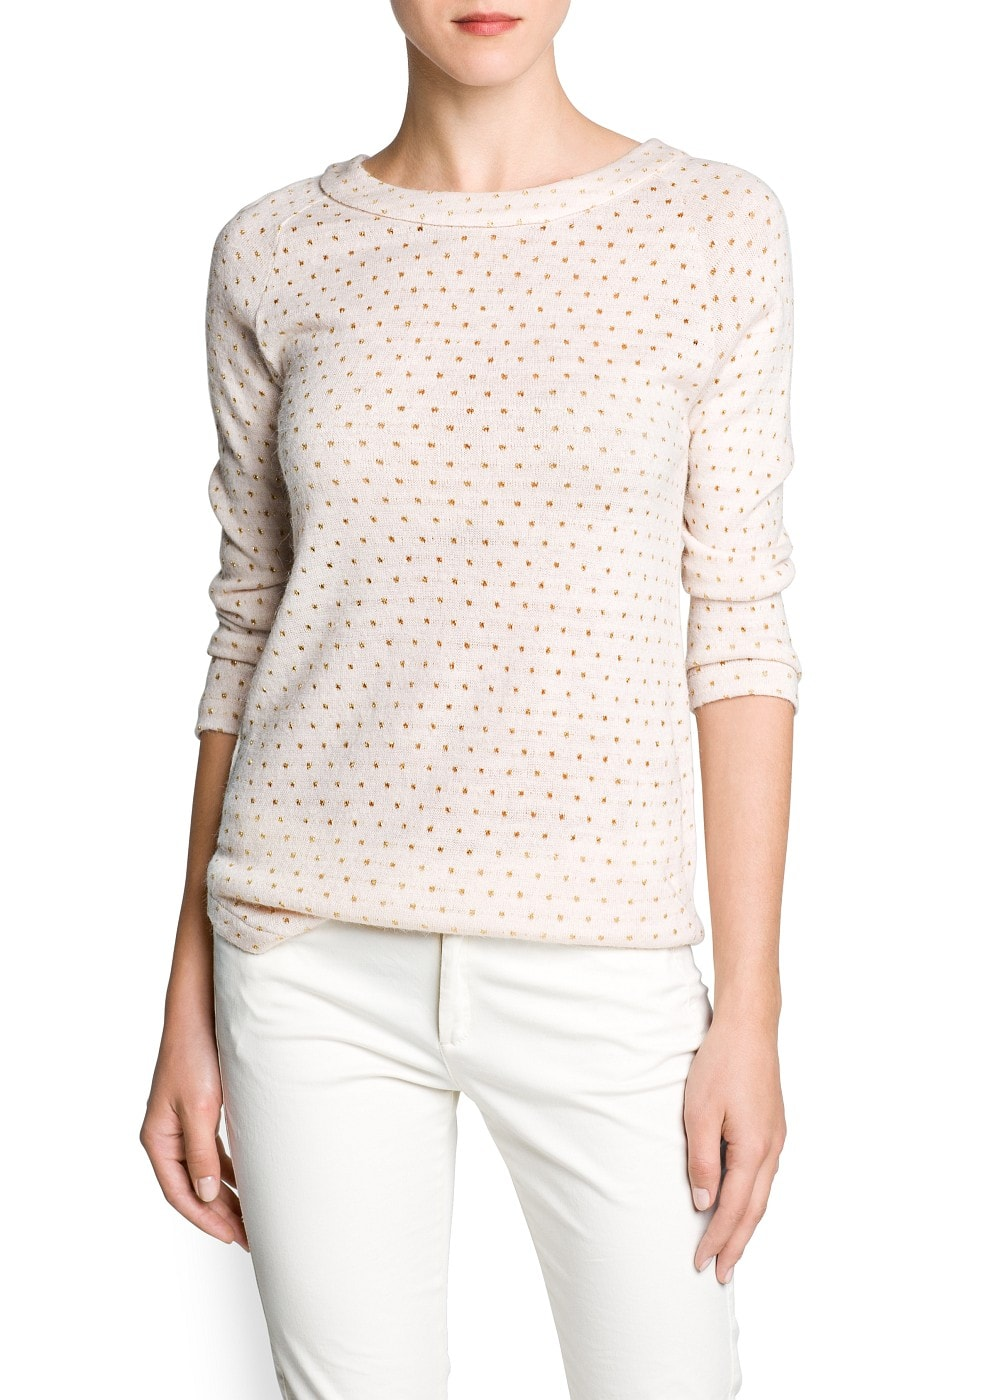 Metallic polka-dot knit t-shirt